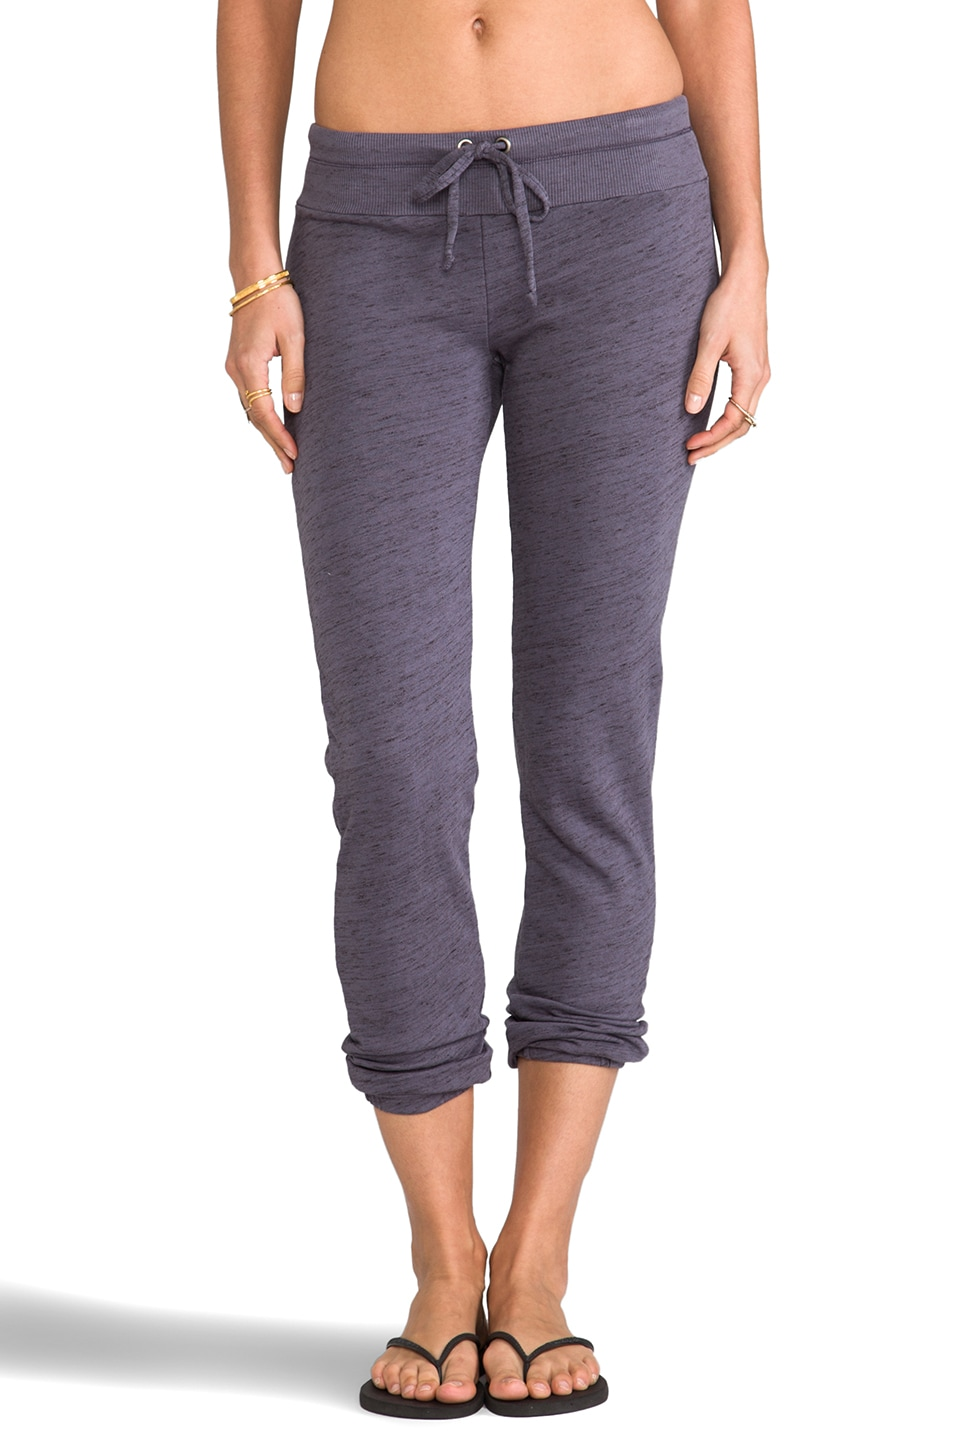 Splendid Space-Dyed Heather Active Sweatpant in Dark Slate